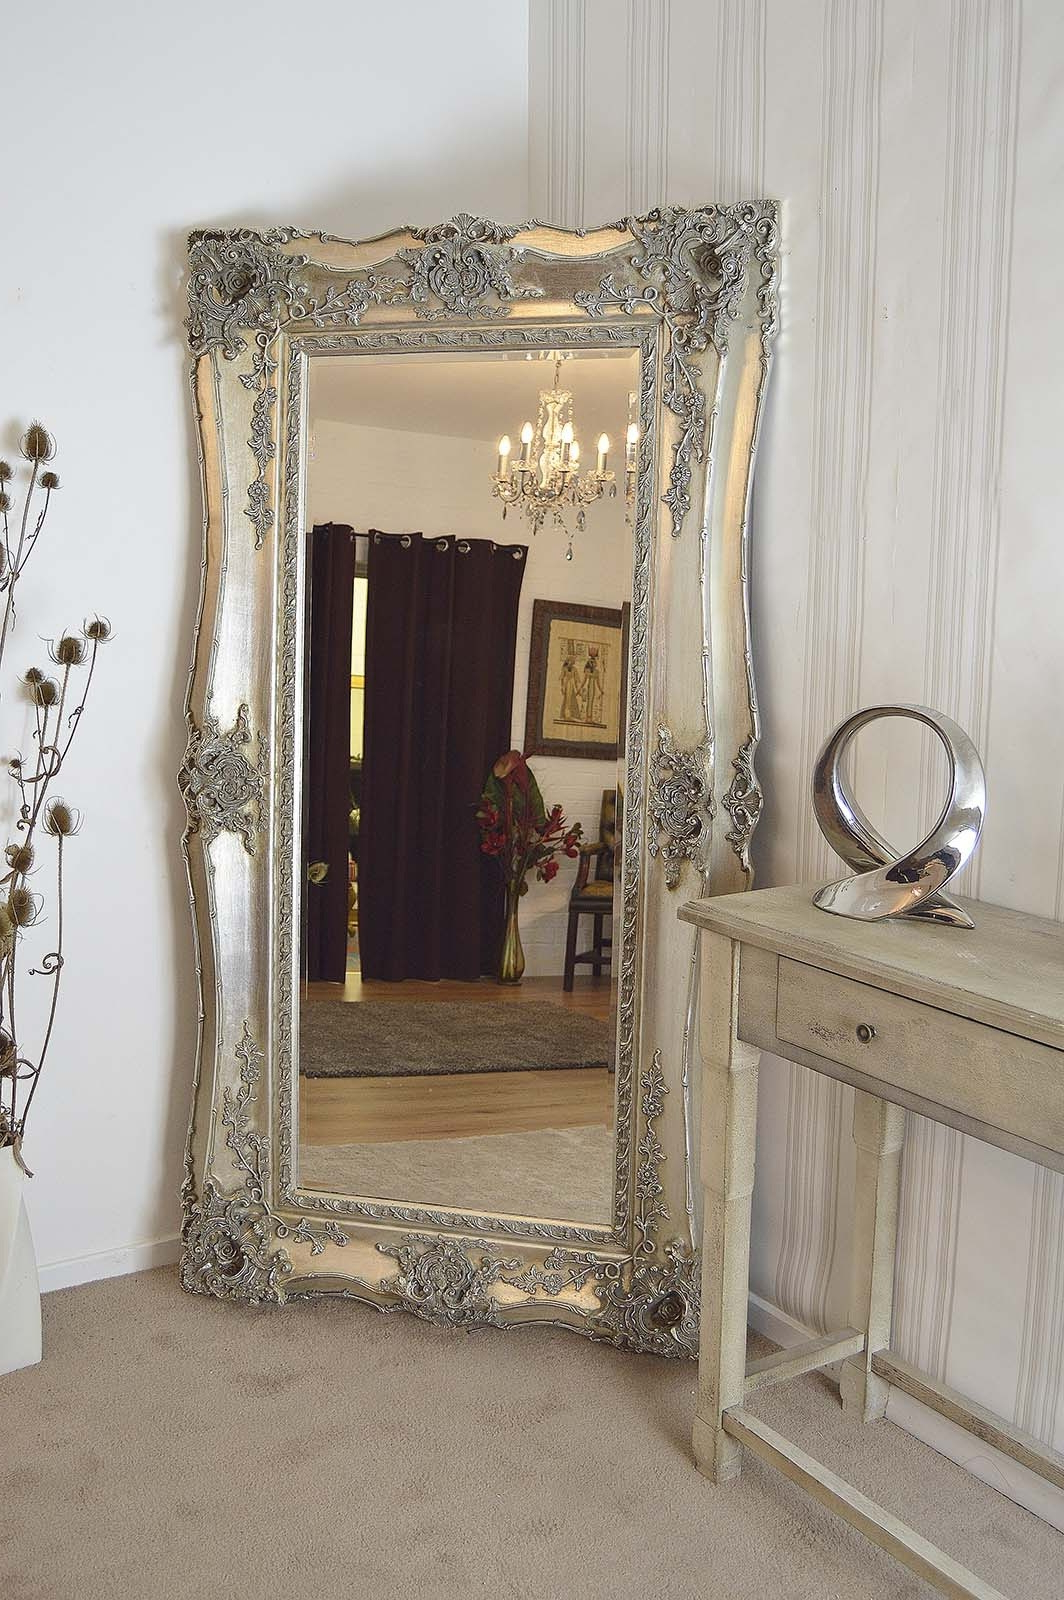 Popular Oversized Wall Mirrors Regarding Large Wall Mirrors For Sale In Cheery Decorative Framed (View 15 of 20)